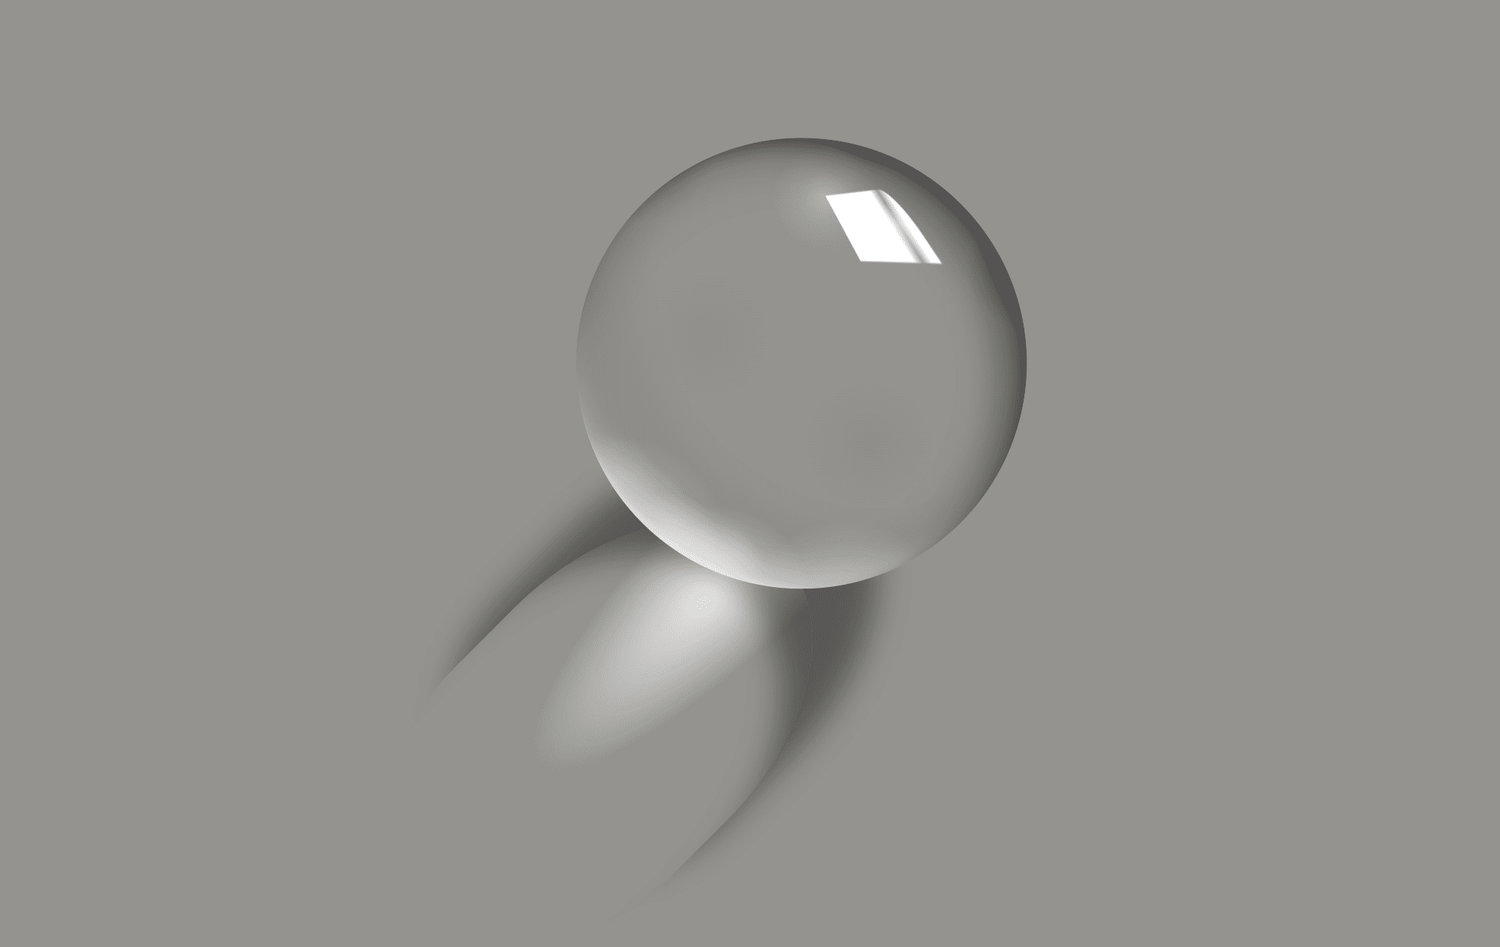 A glass sphere